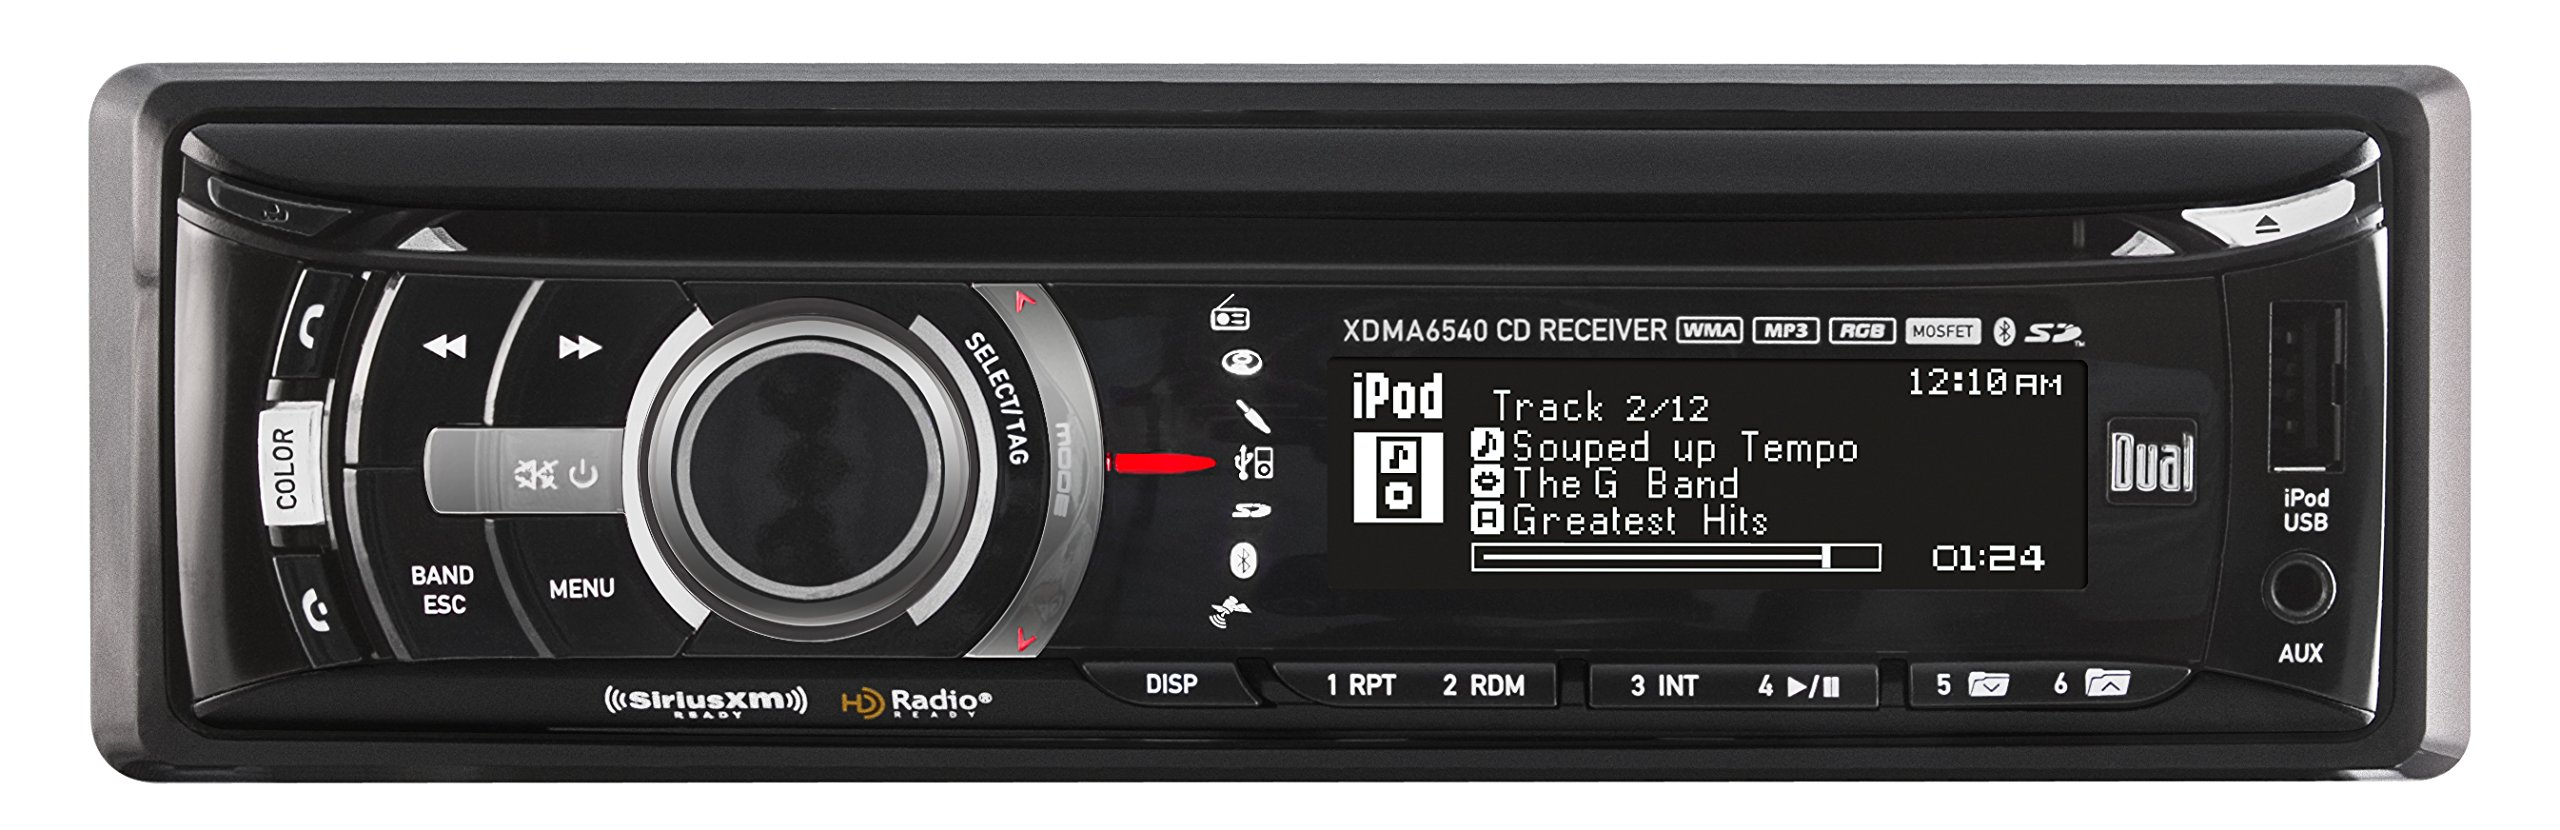 Dual Electronics XDMA6540 Multimedia Full Graphic LCD Single DIN Car Stereo with Built- In Bluetooth, CD, USB & MP3 Player